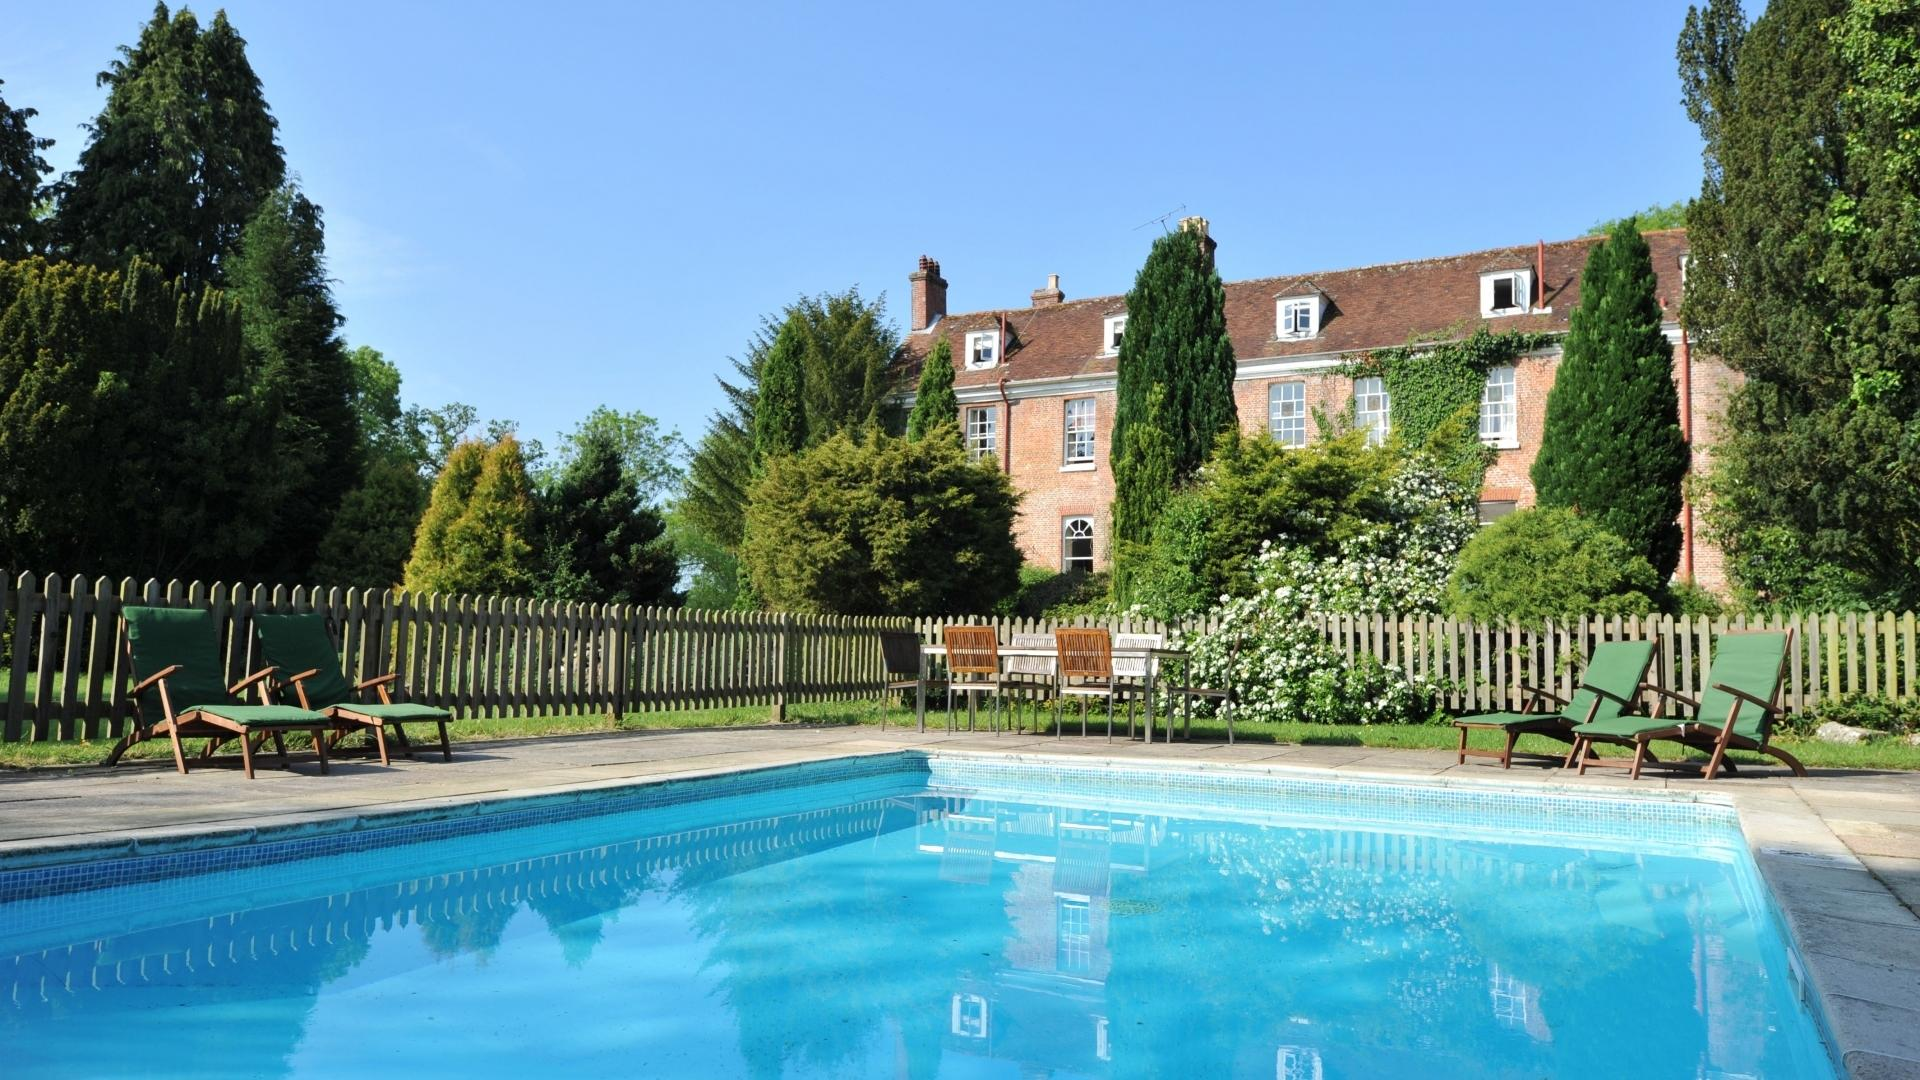 2 Bedroom Family Friendly Hotel in Hampshire, United Kingdom